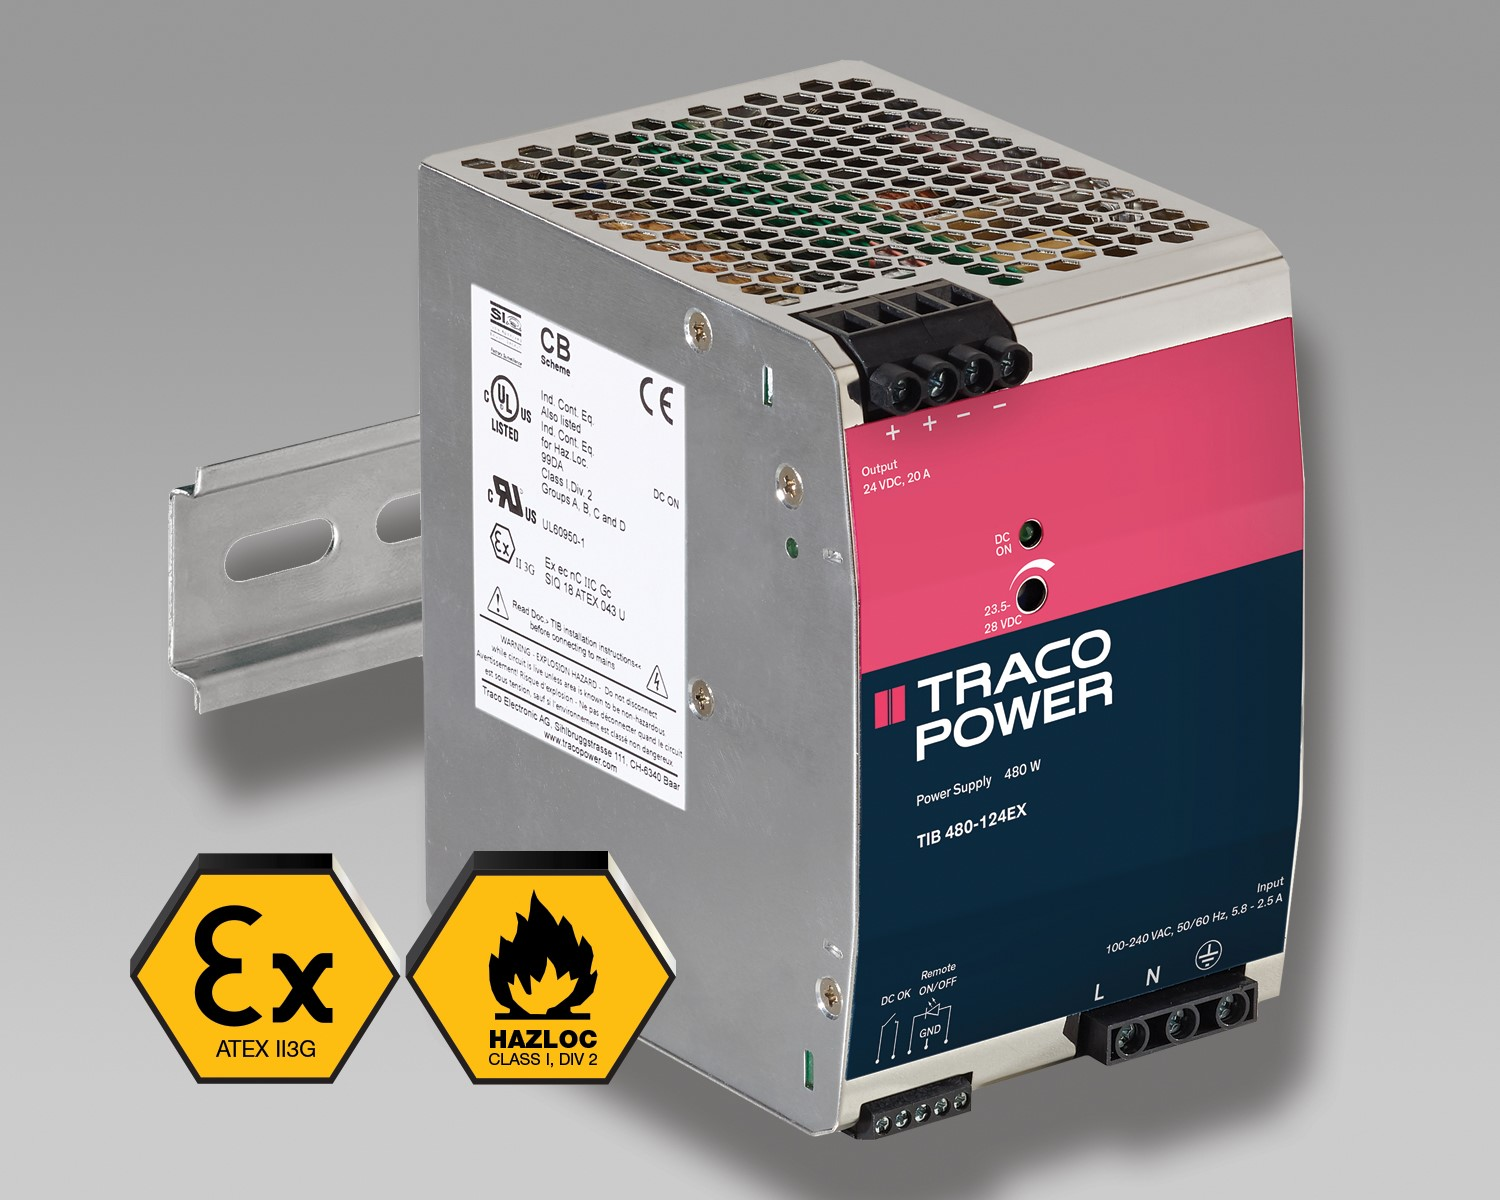 TRACO POWER releases TIB 480-EX Family of 480 Watt DIN rail power supplies